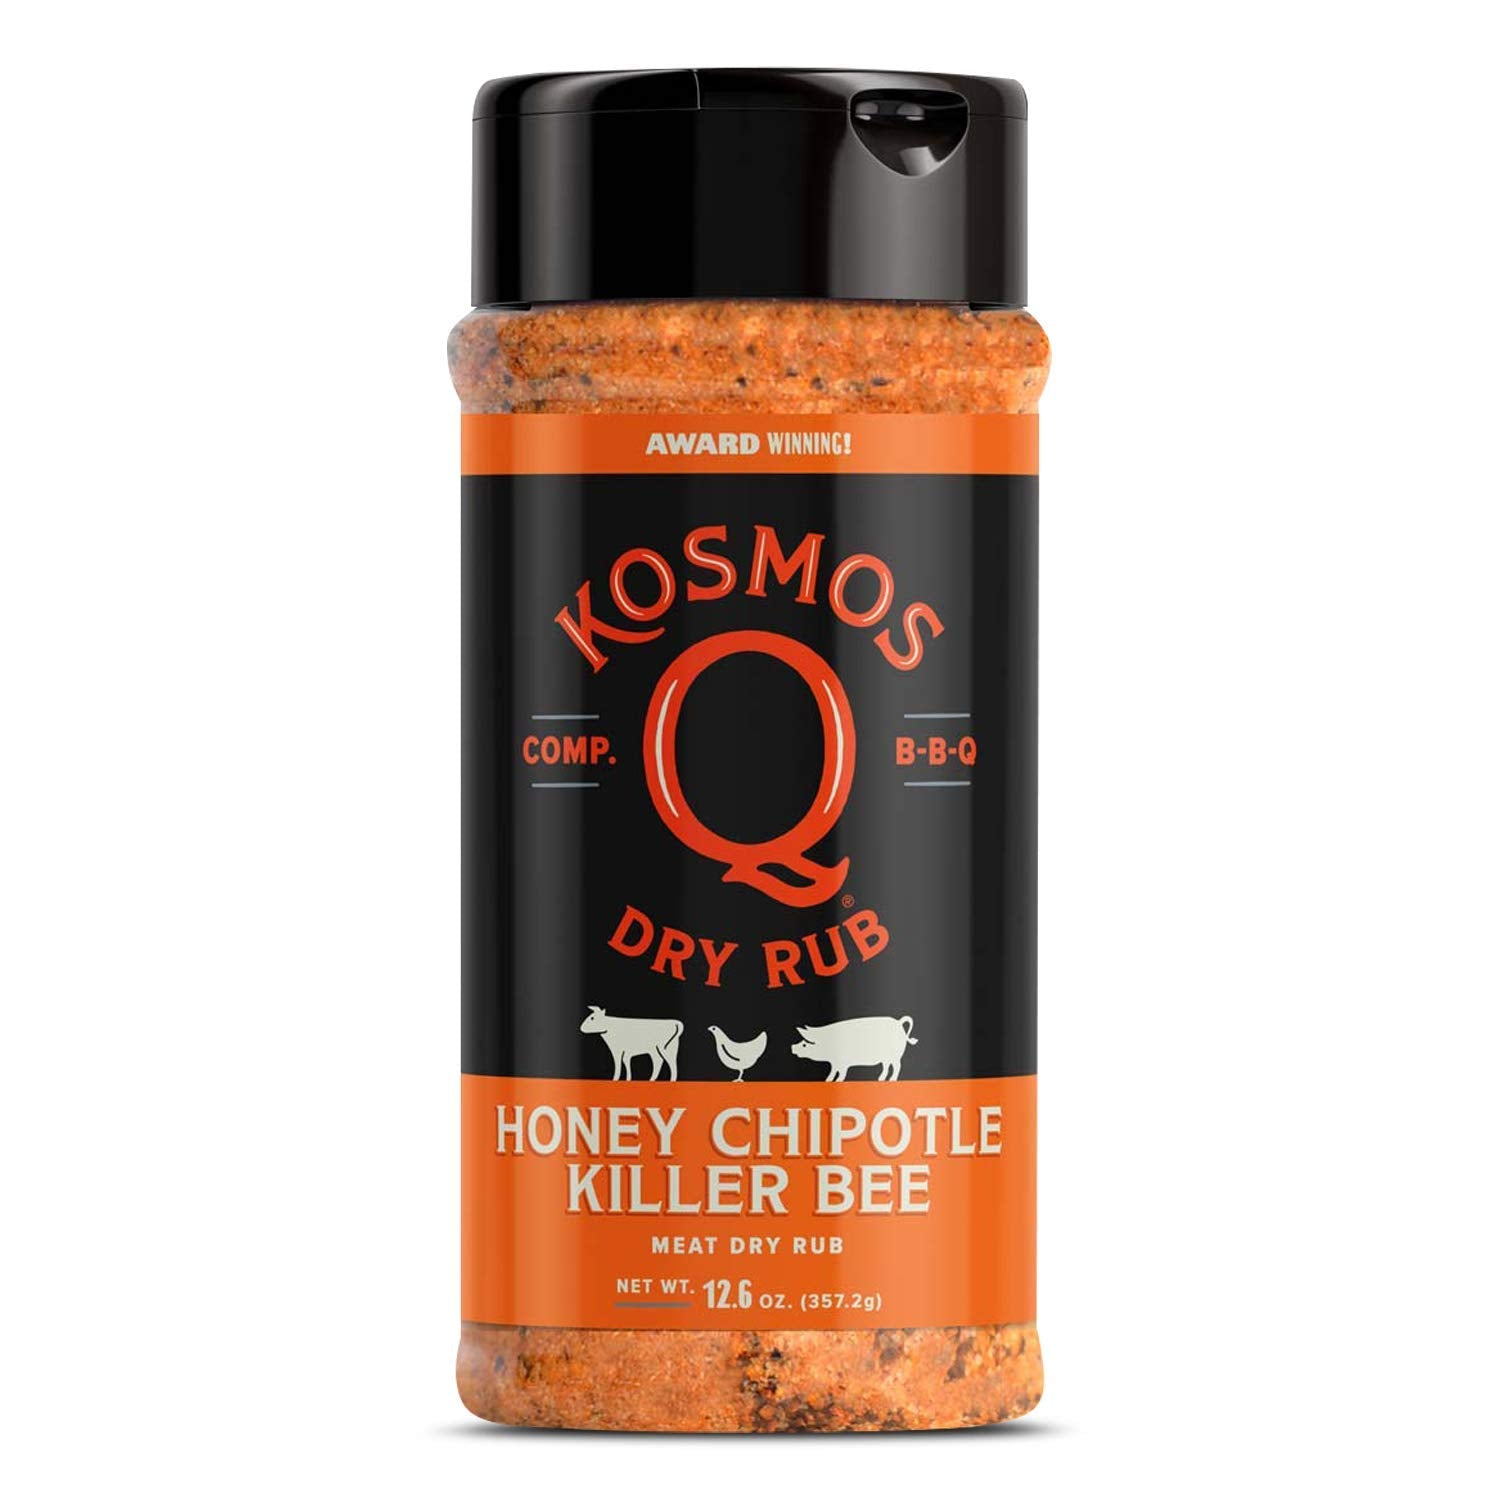 Kosmo's Q Spicy Killer Bee Chipotle Honey Rub (12.6oz)